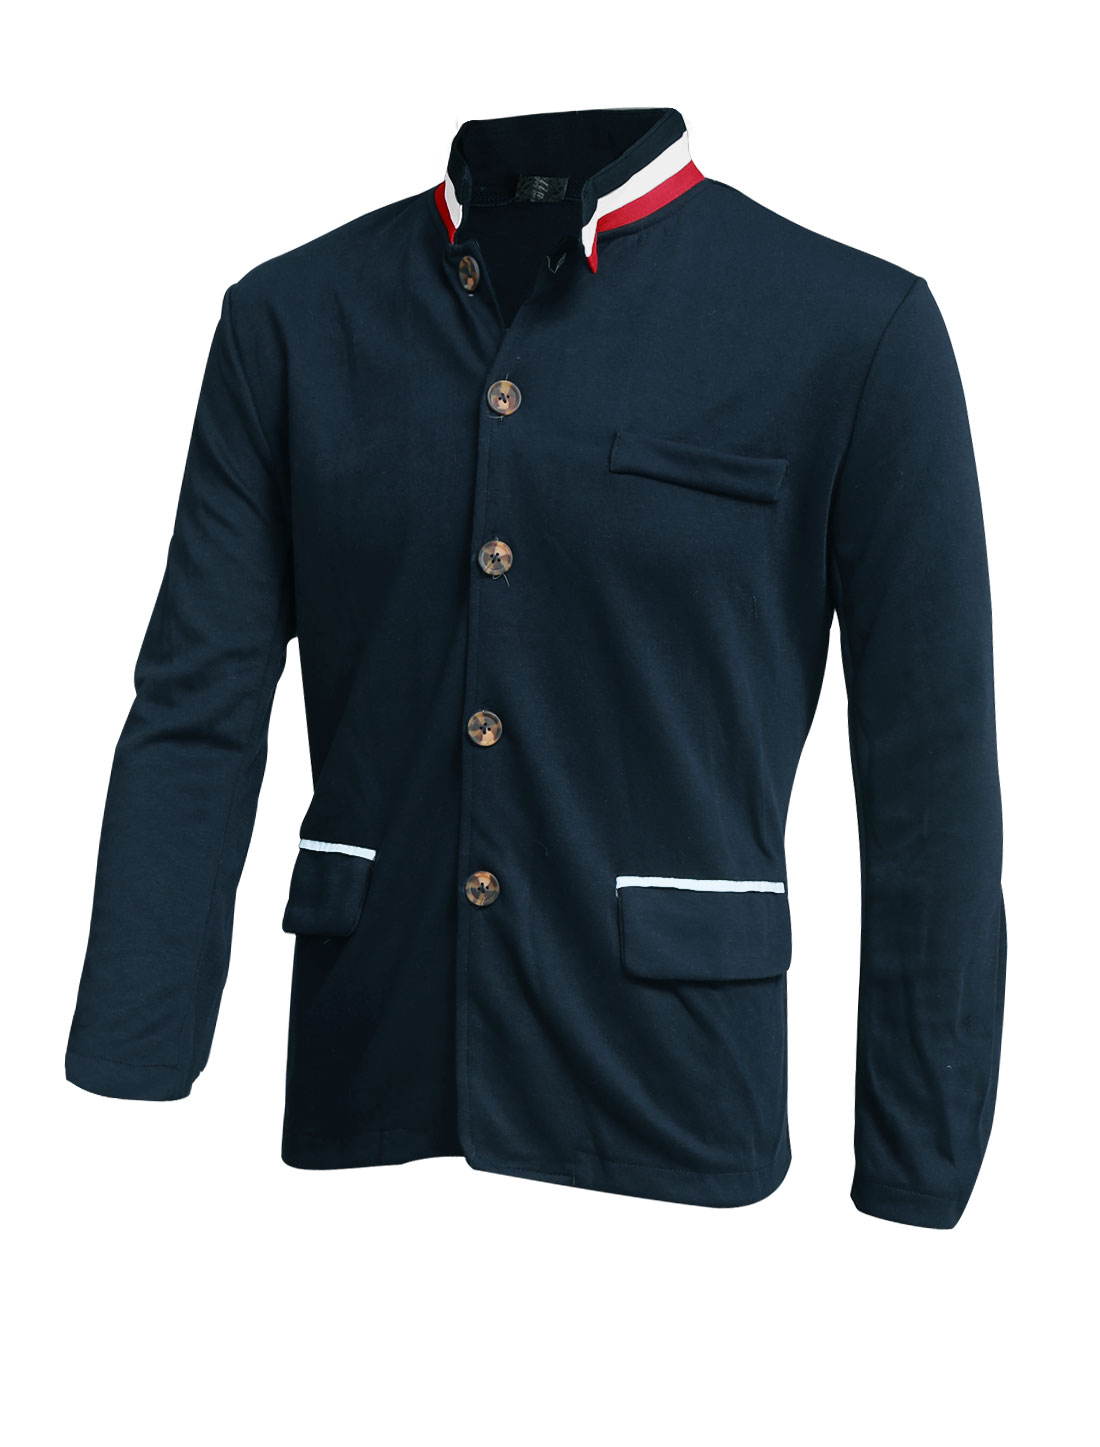 Men Stand Collar Chest Pocket Decor Leisure Light Jacket Navy Blue M